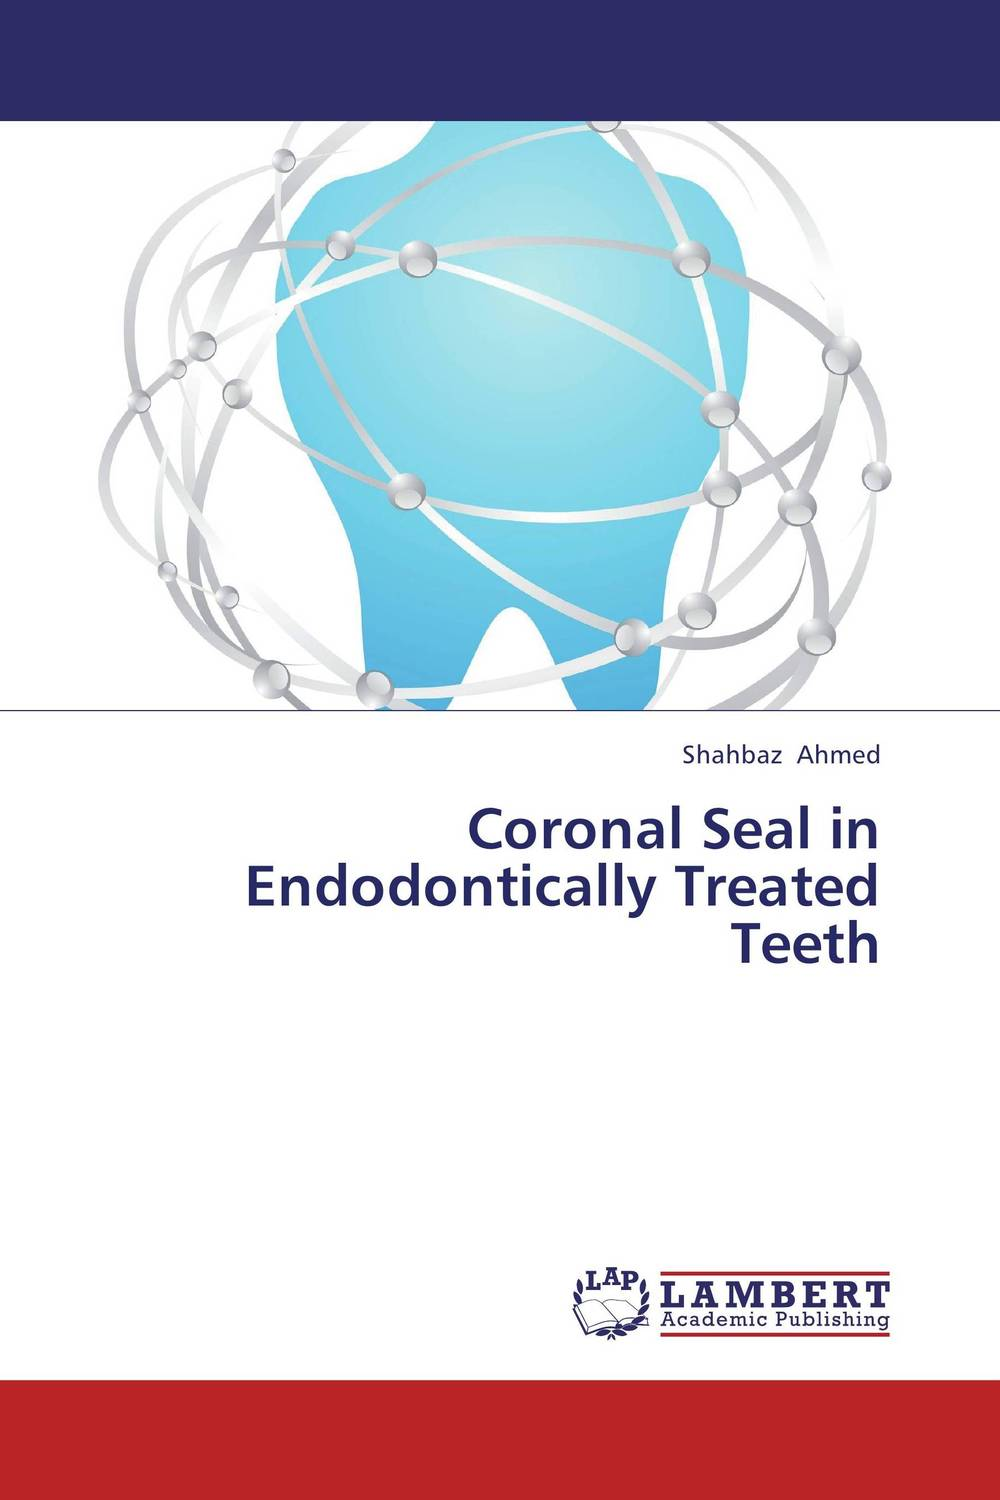 Coronal Seal in Endodontically Treated Teeth the teeth with root canal students to practice root canal preparation and filling actually